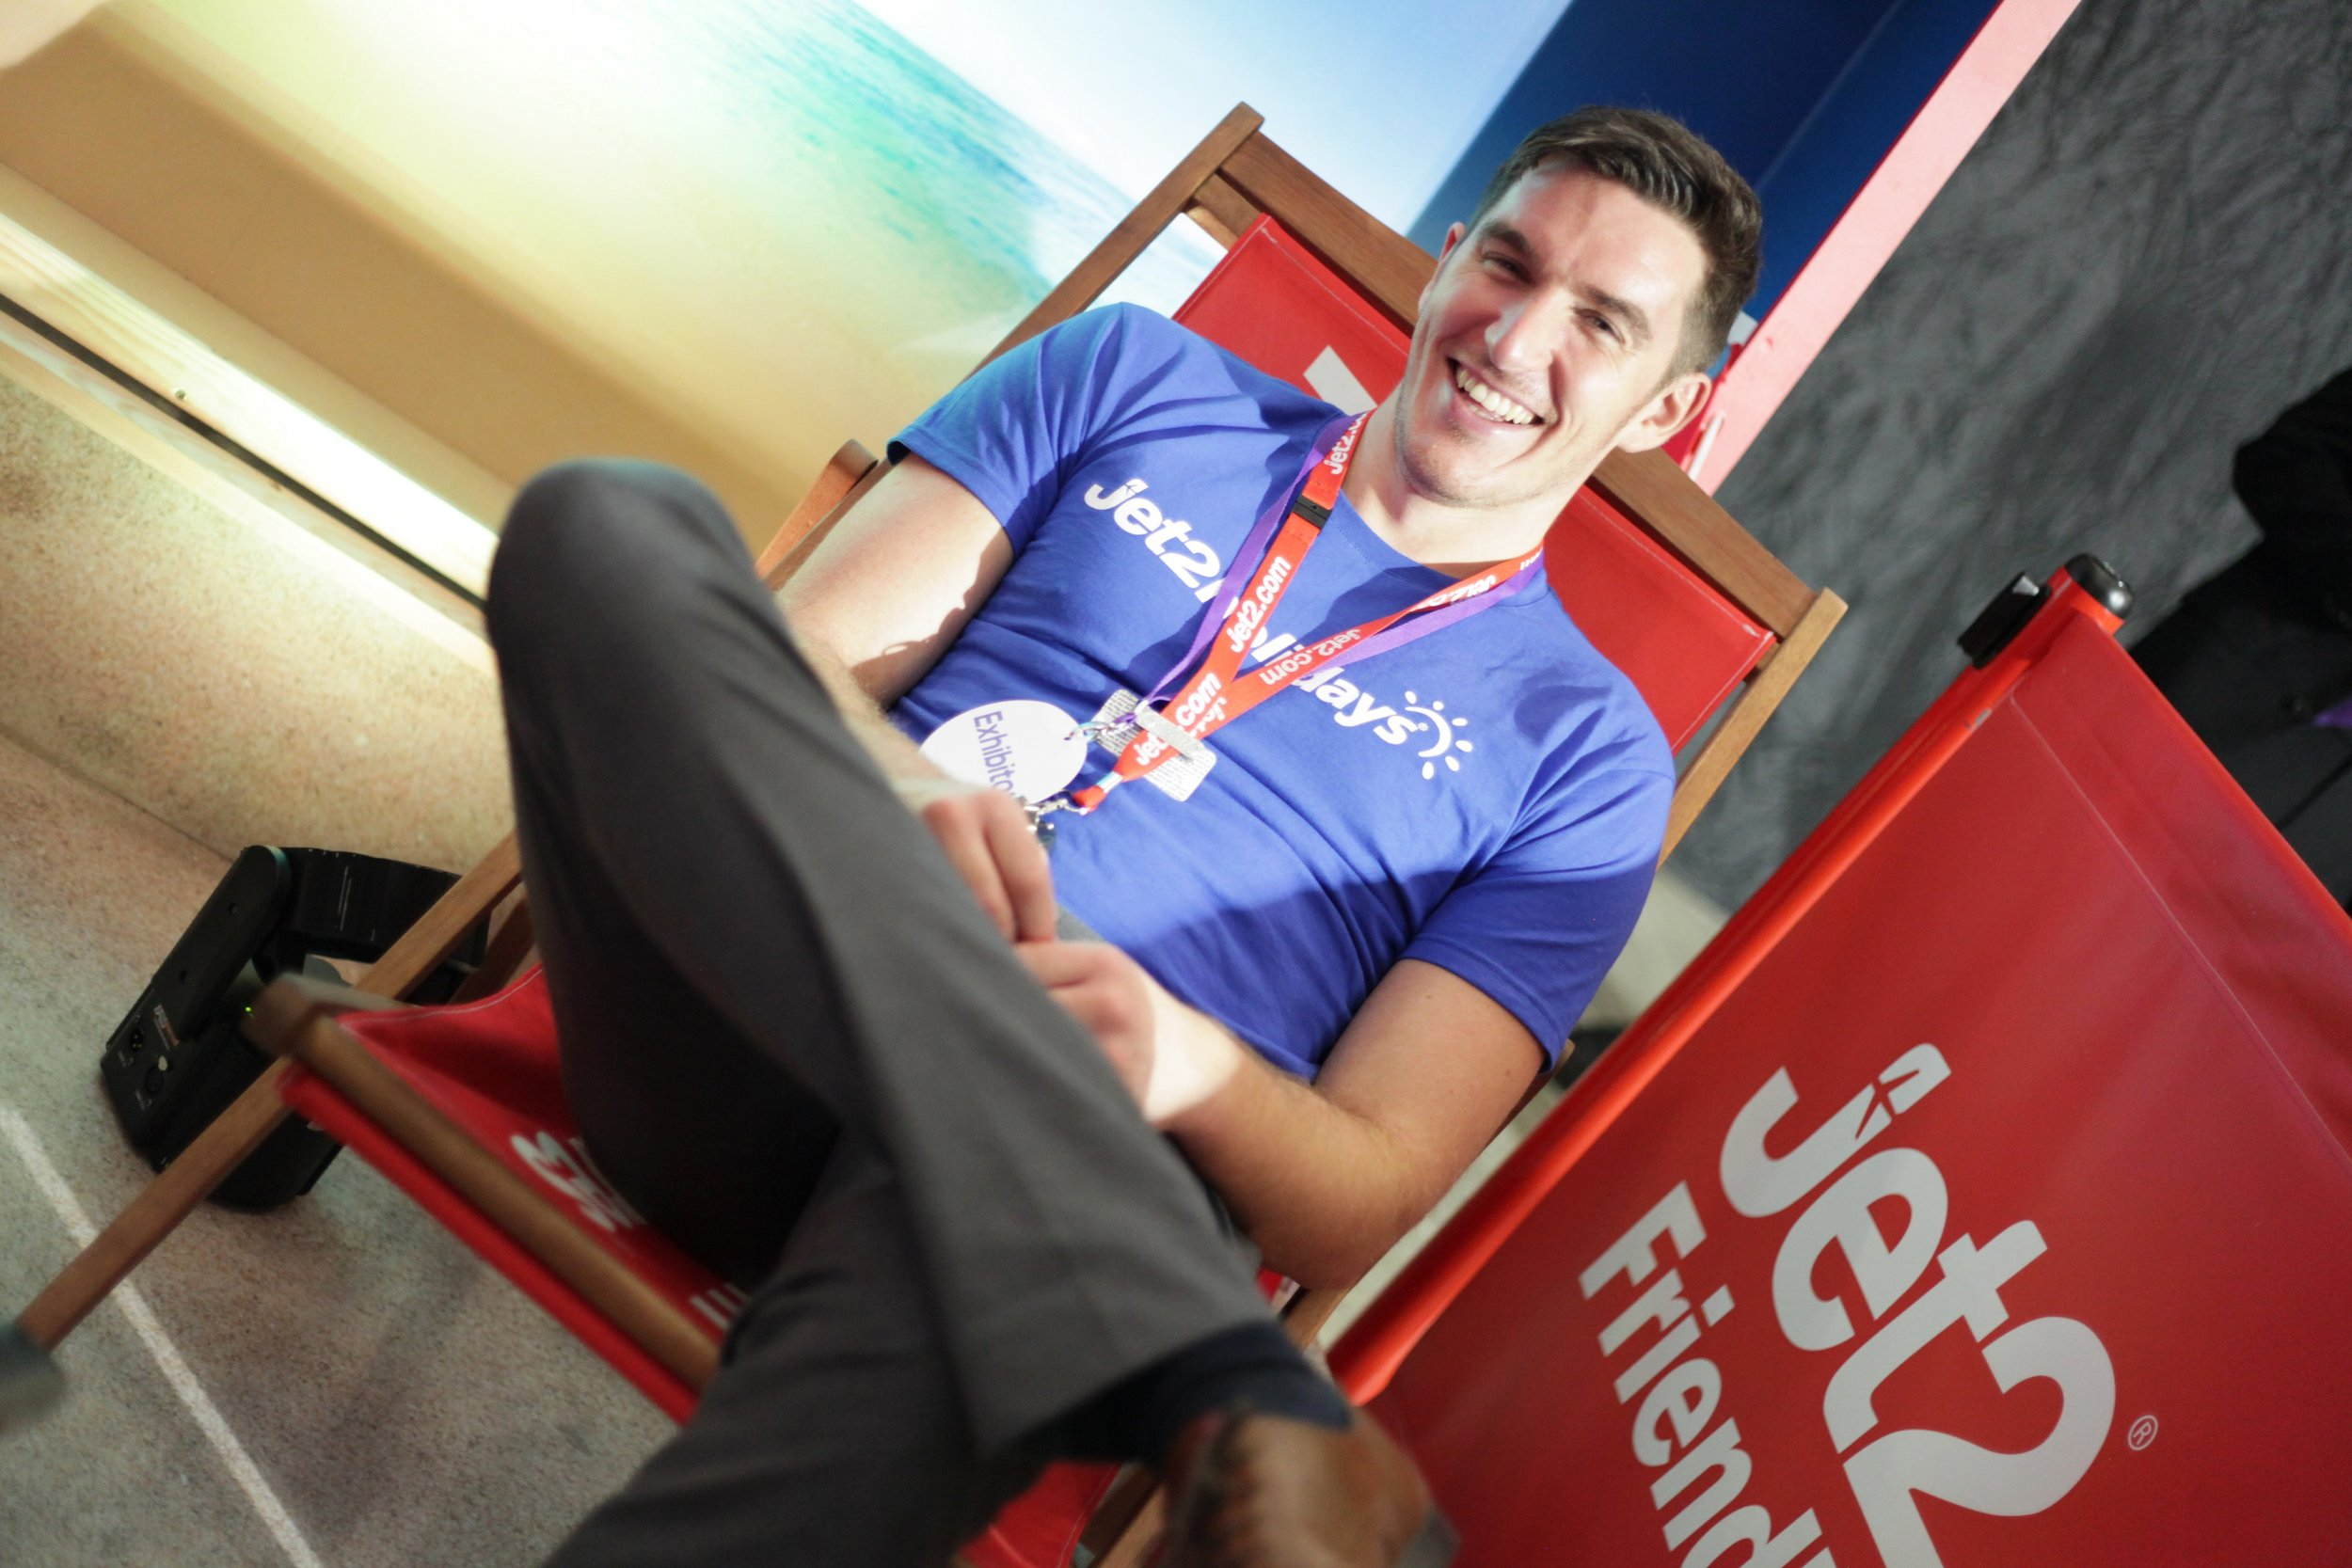 Johnathan Nicolson grabbing a quick rest at the busy Jet2.com and Jet2holidays stand